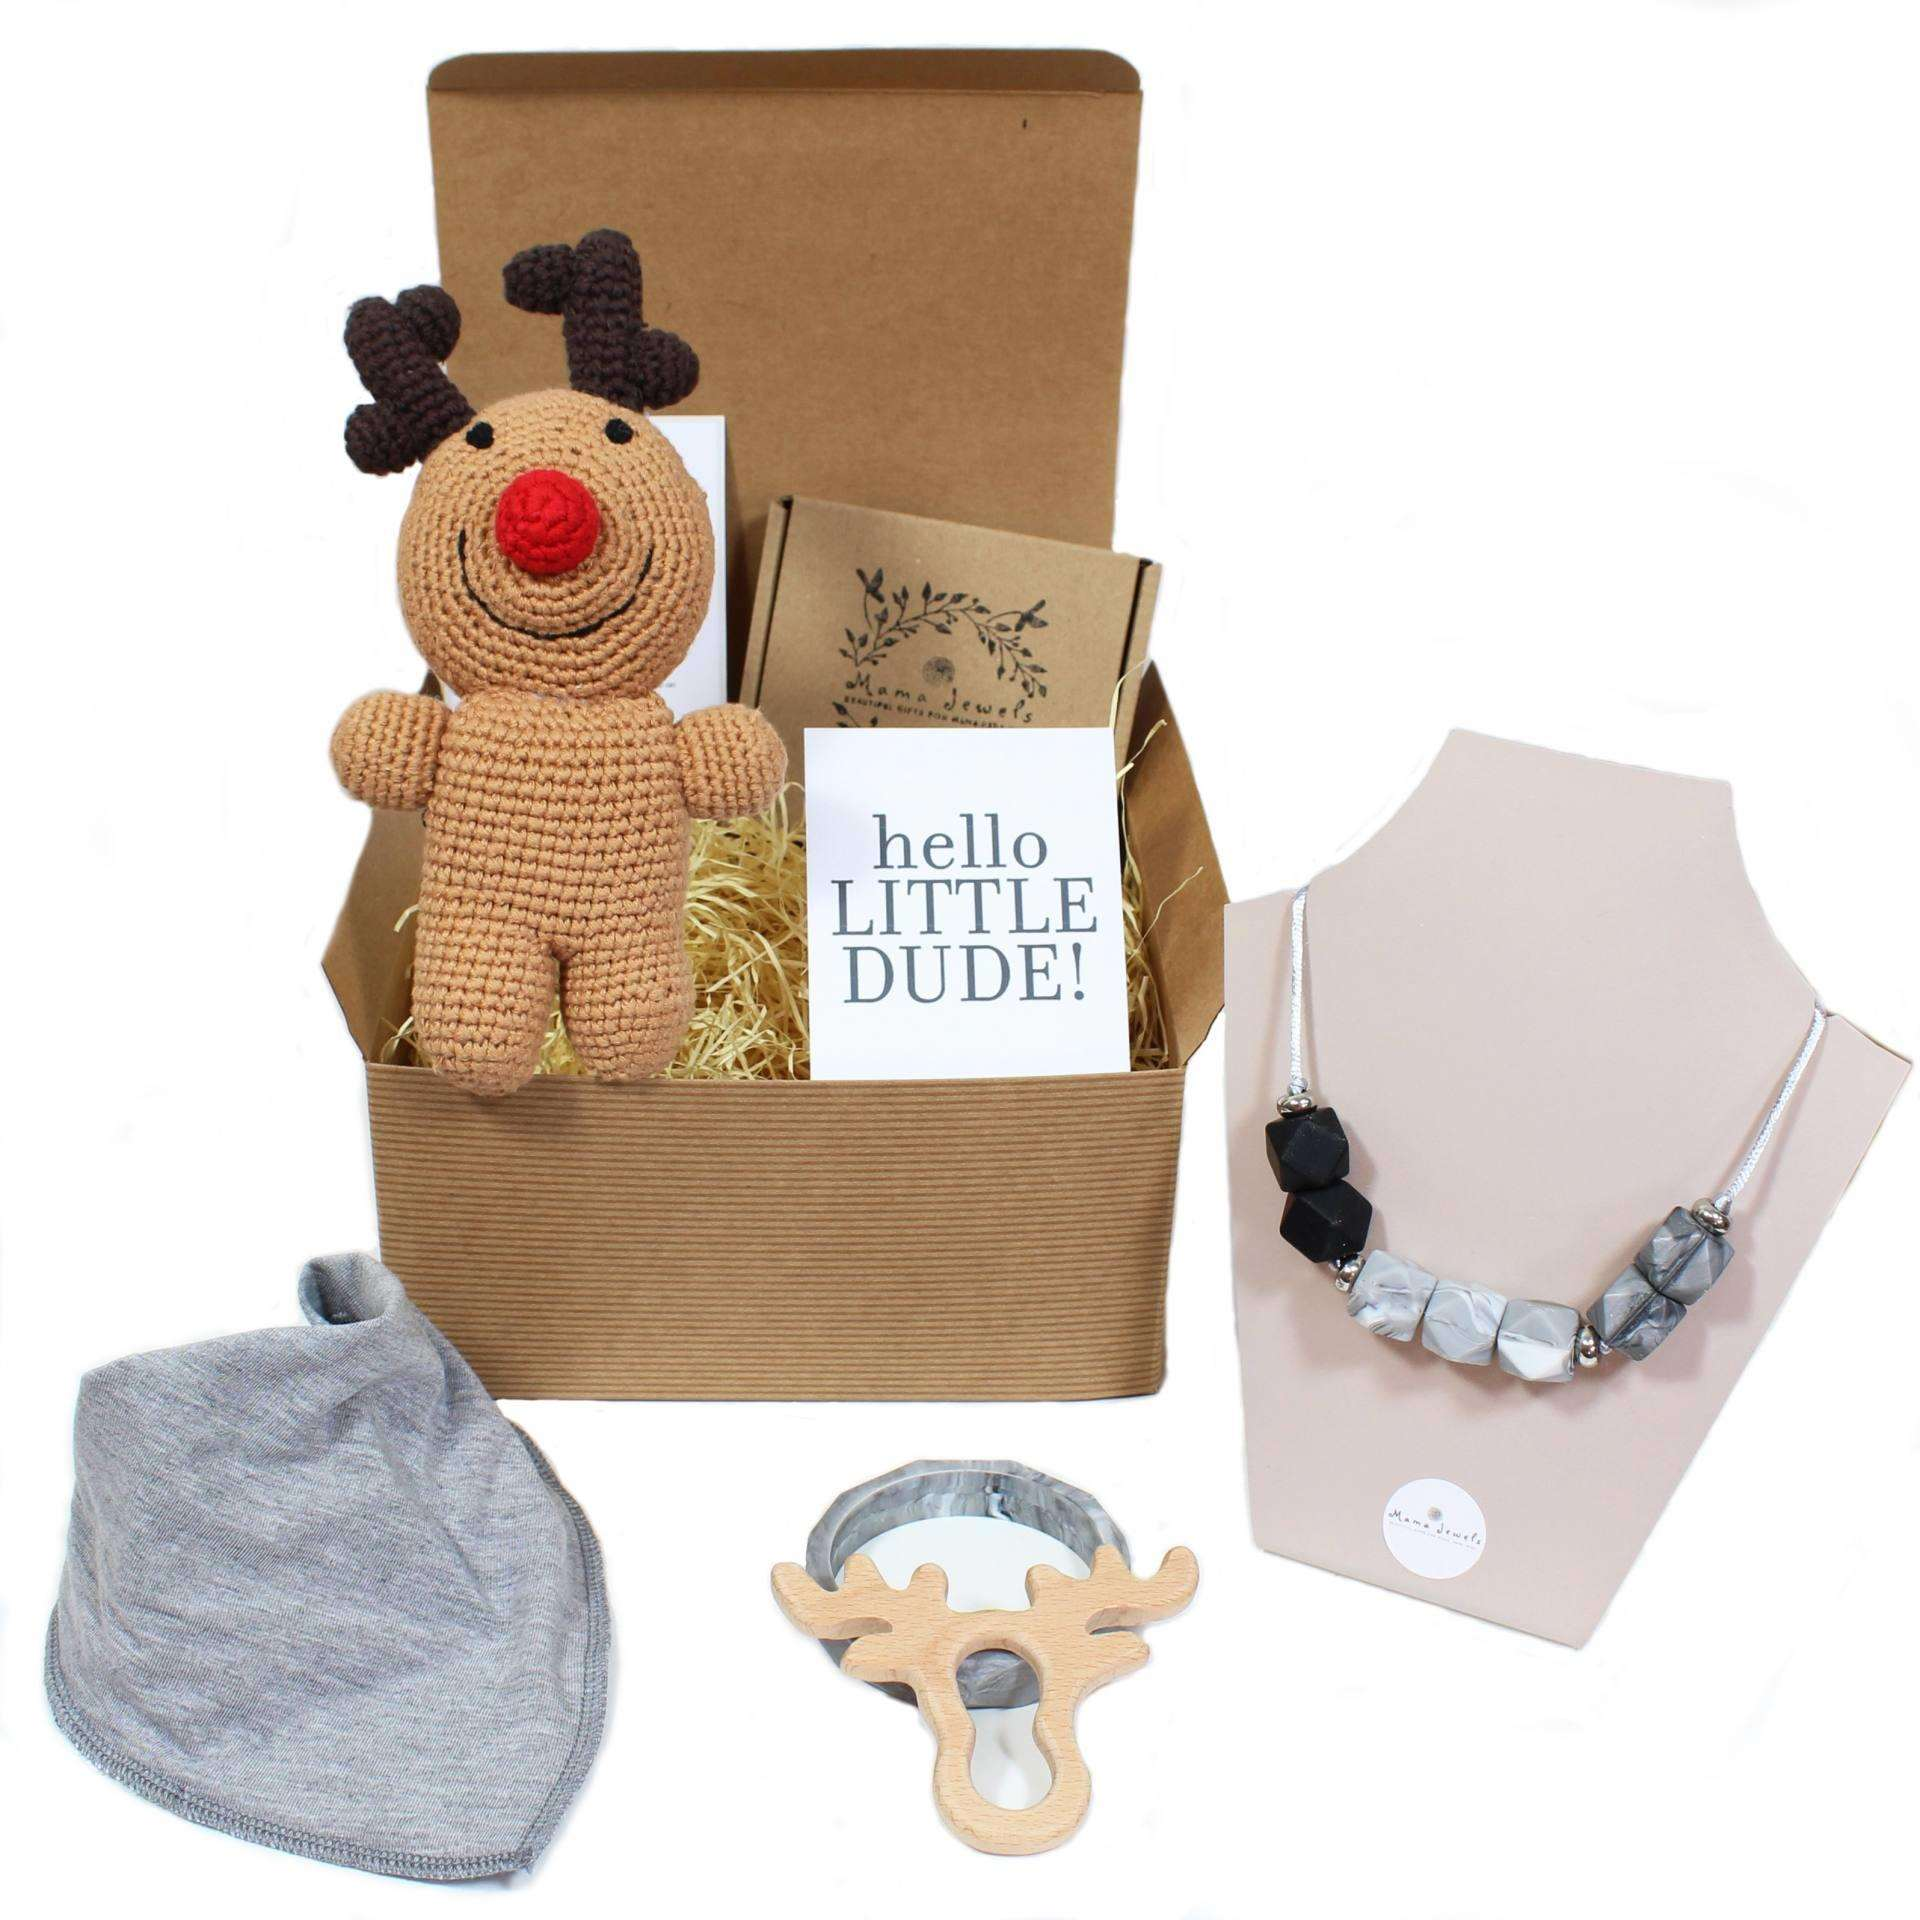 Fab Baby Brands To Buy This Christmas!, img 2111%, product-review, 0-1%